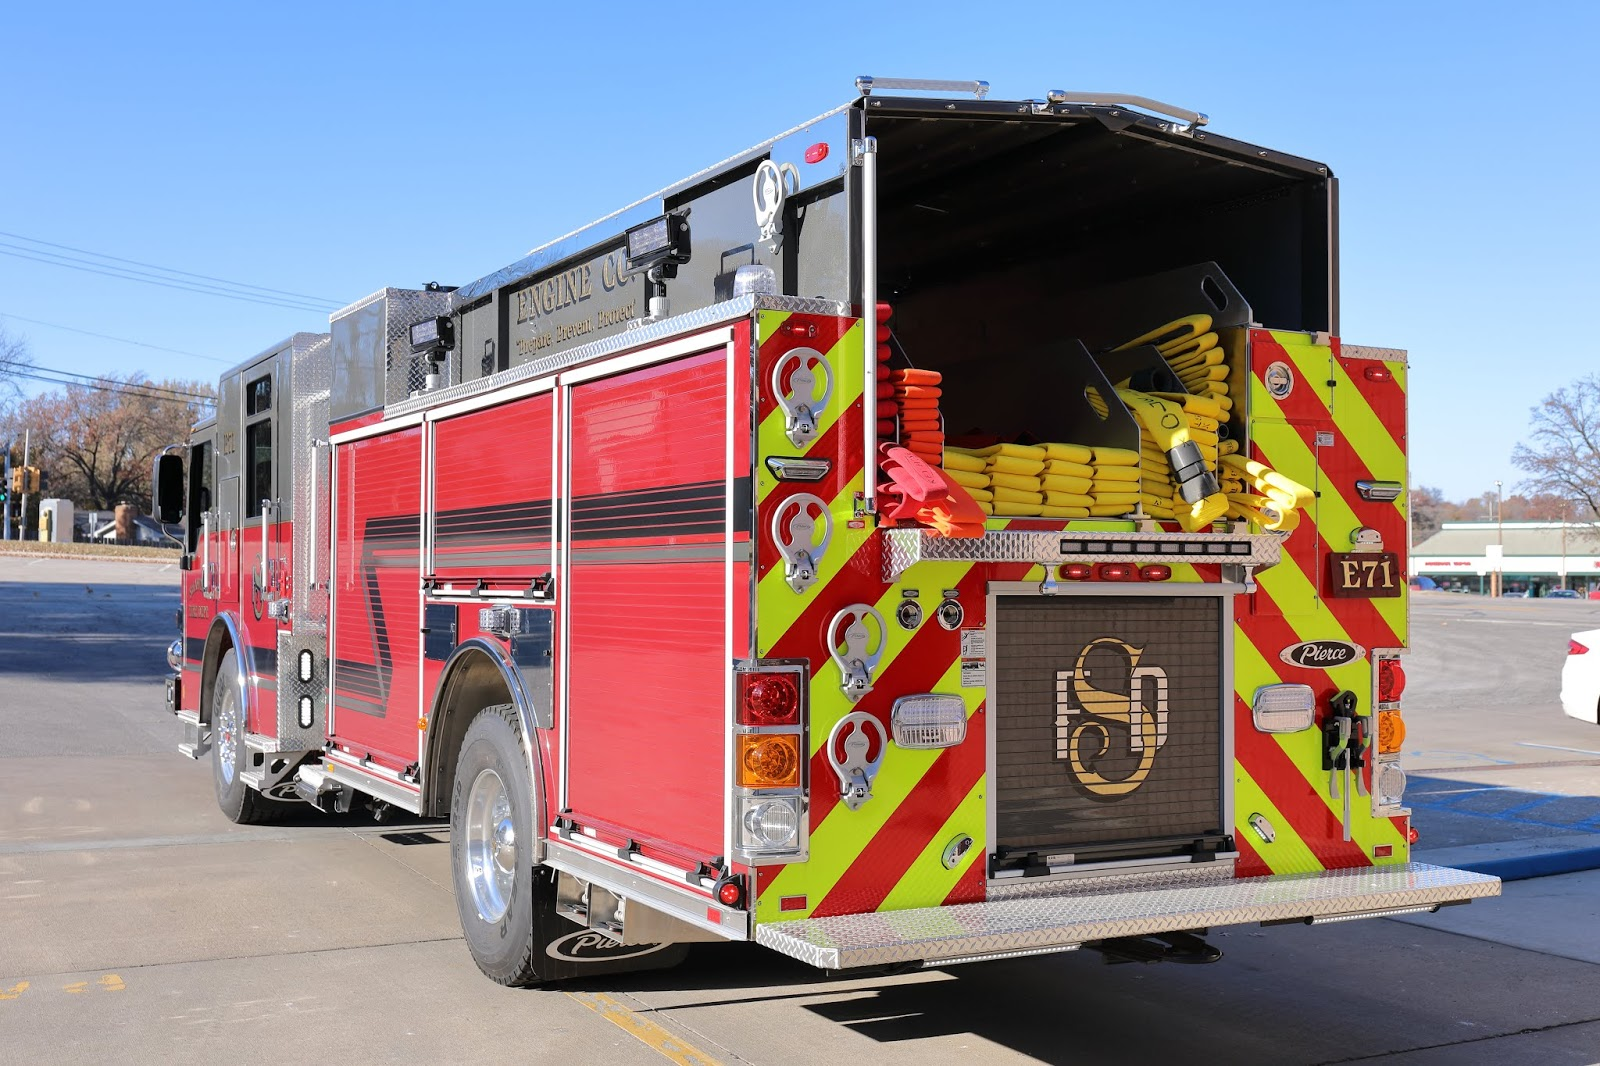 Operation100news: Shawnee Fire Department debuts new fire truck to